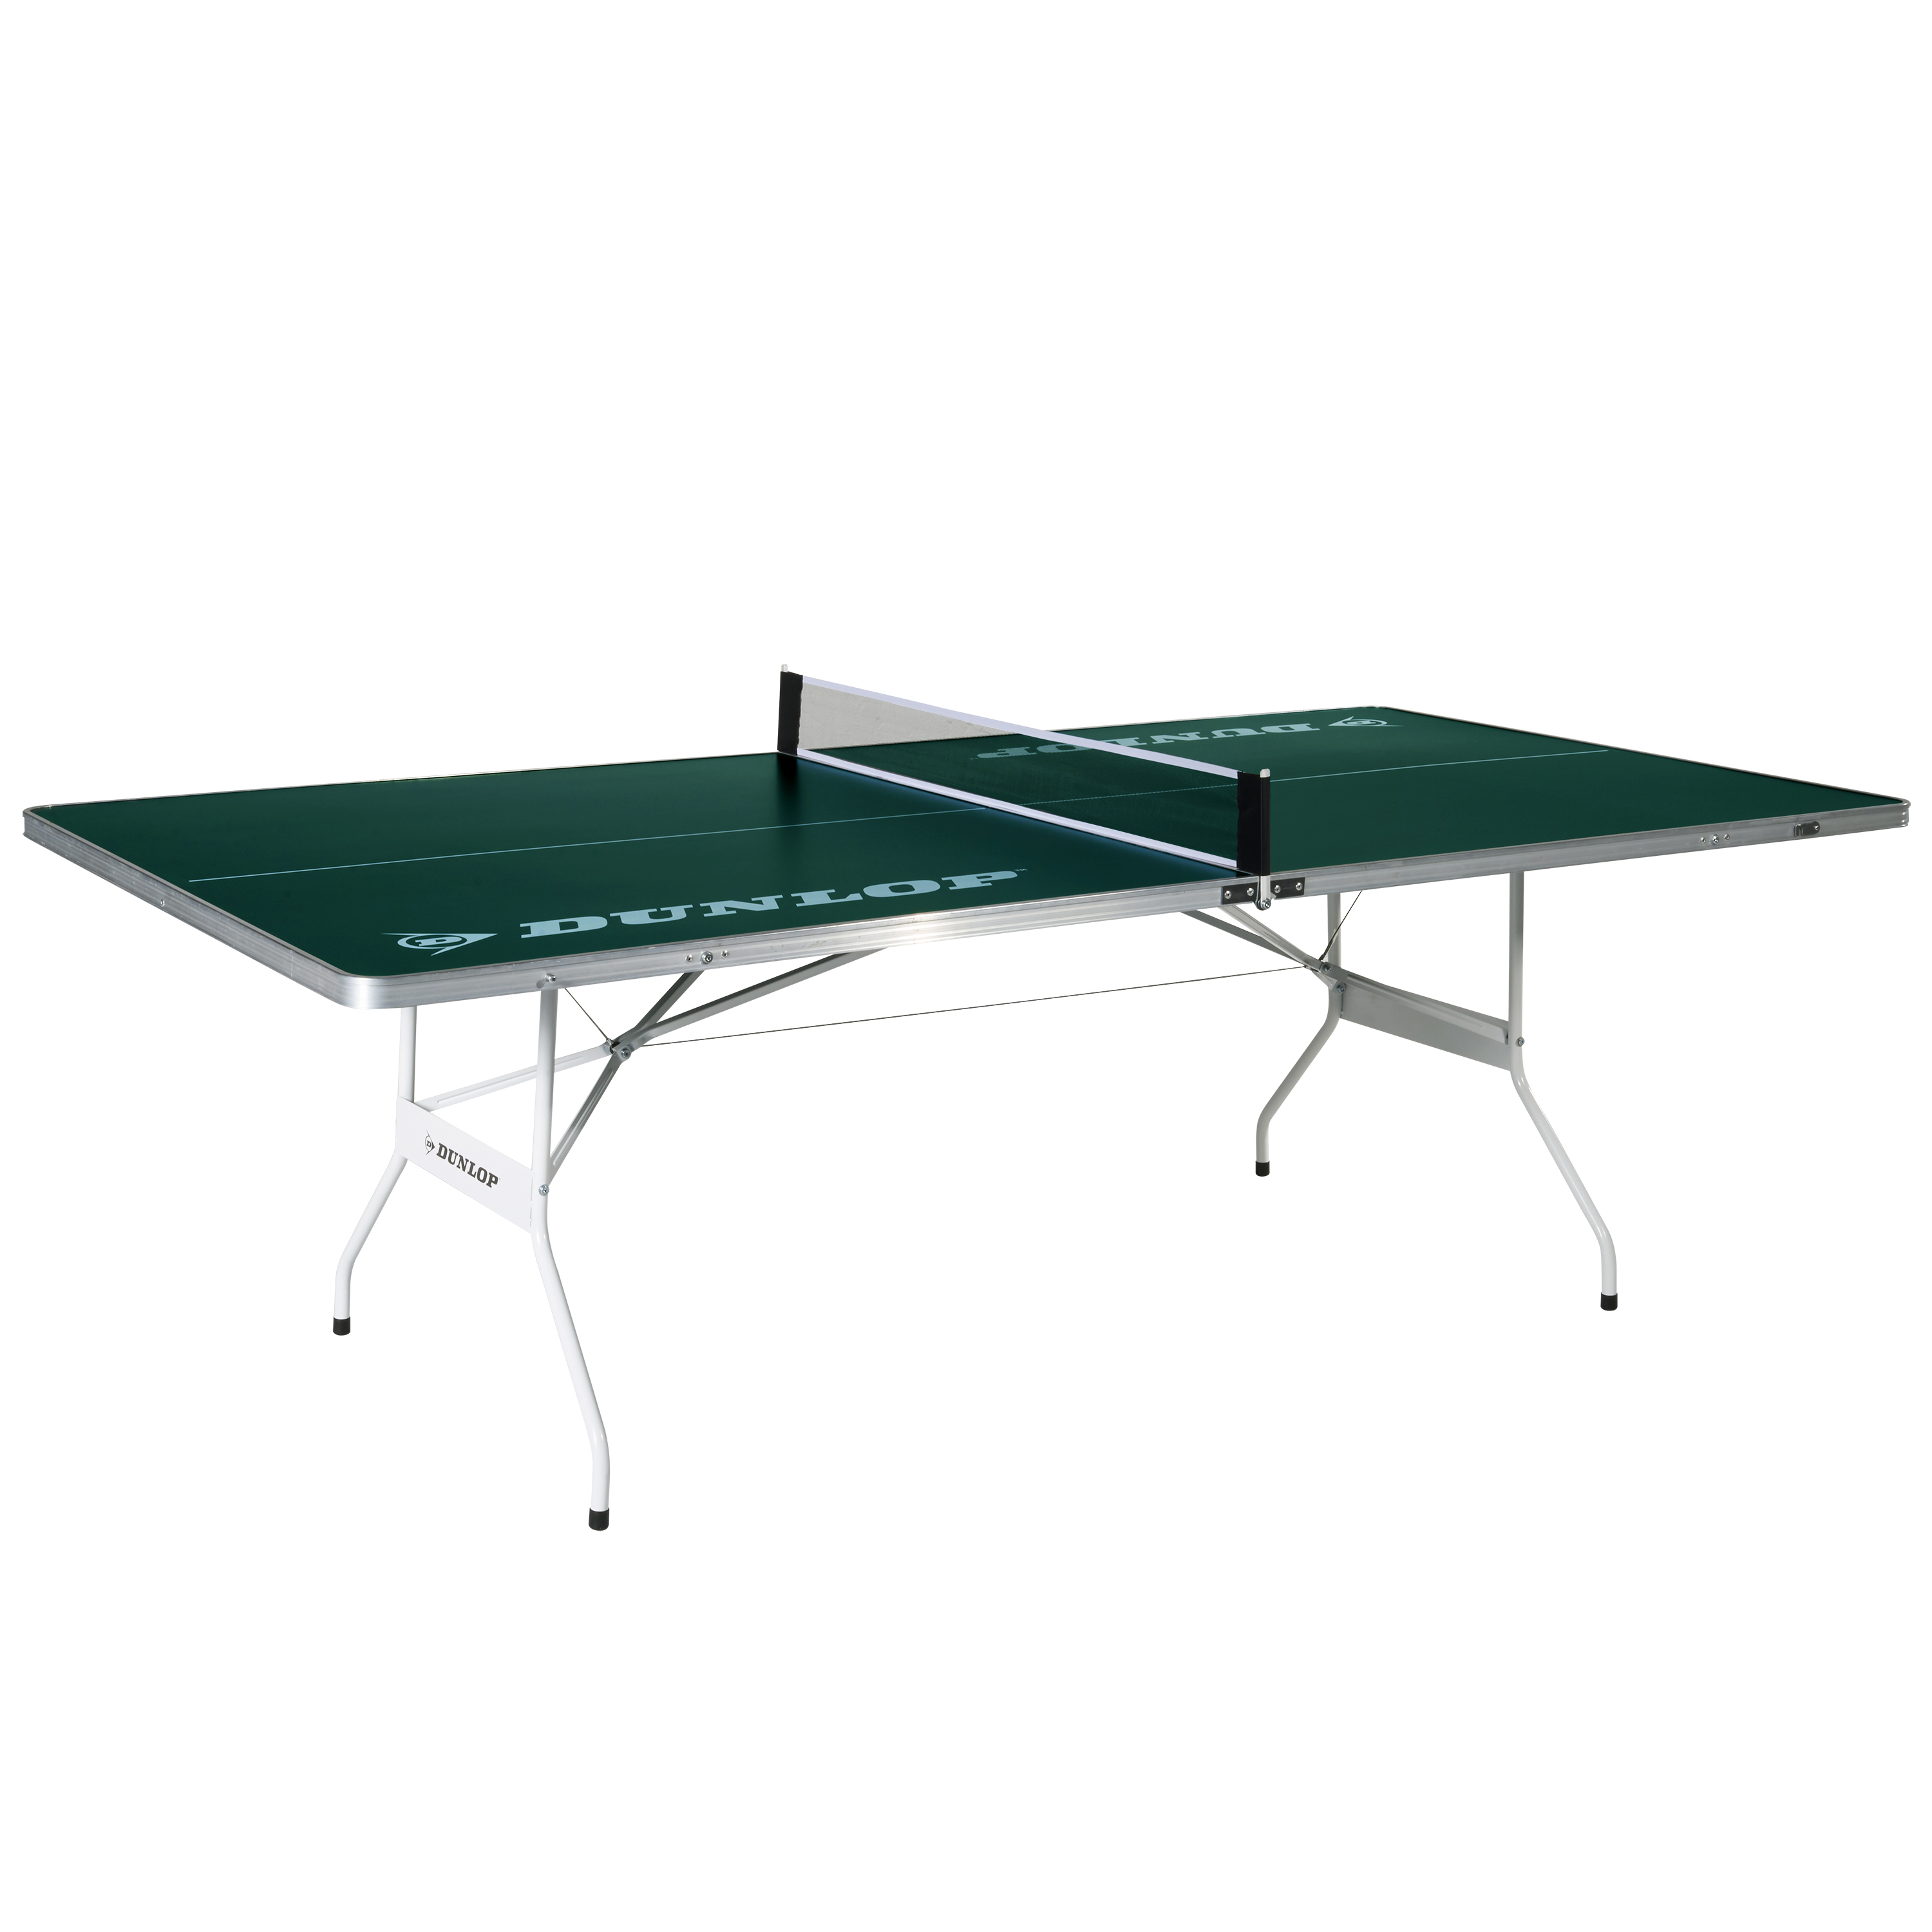 DUNLOP Easy Fold Outdoor Table Tennis Table